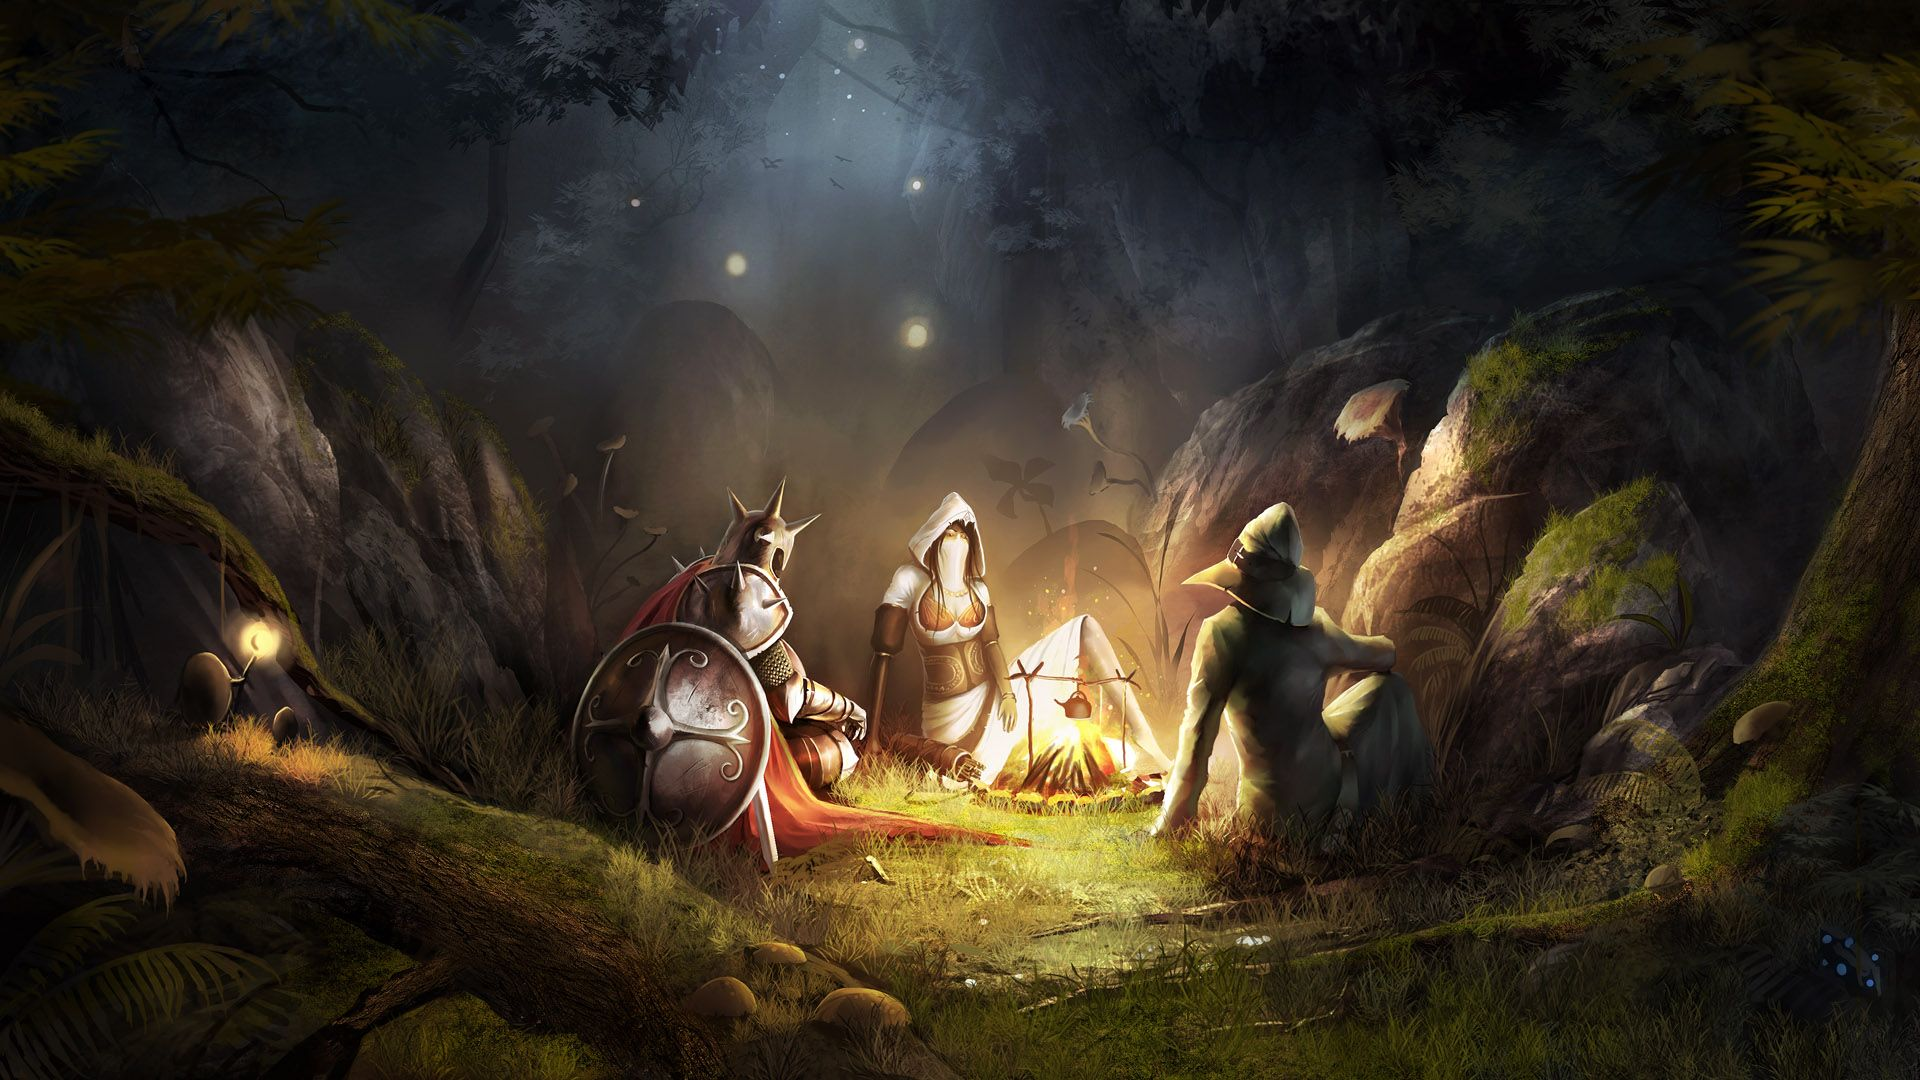 Trine Artwork Warriors Dungeons And Dragons Soft Shading Wallpaper Fantasy Pictures Campfire Stories Fantasy Background